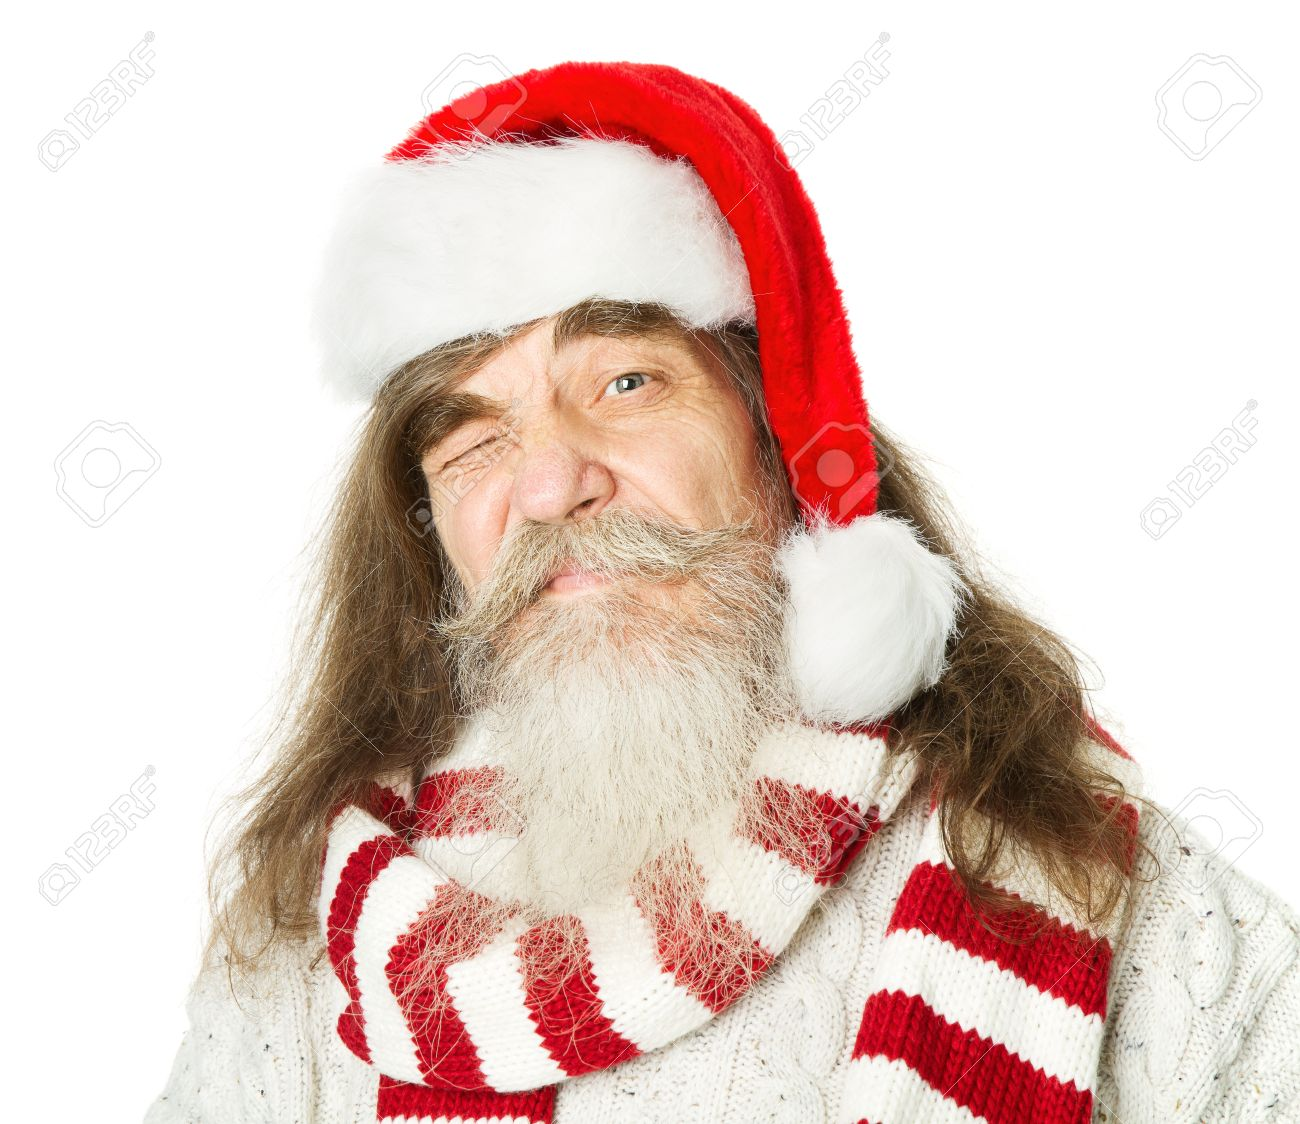 Christmas Parody.Christmas Old Man With Beard In Red Hat Santa Claus Funny Parody